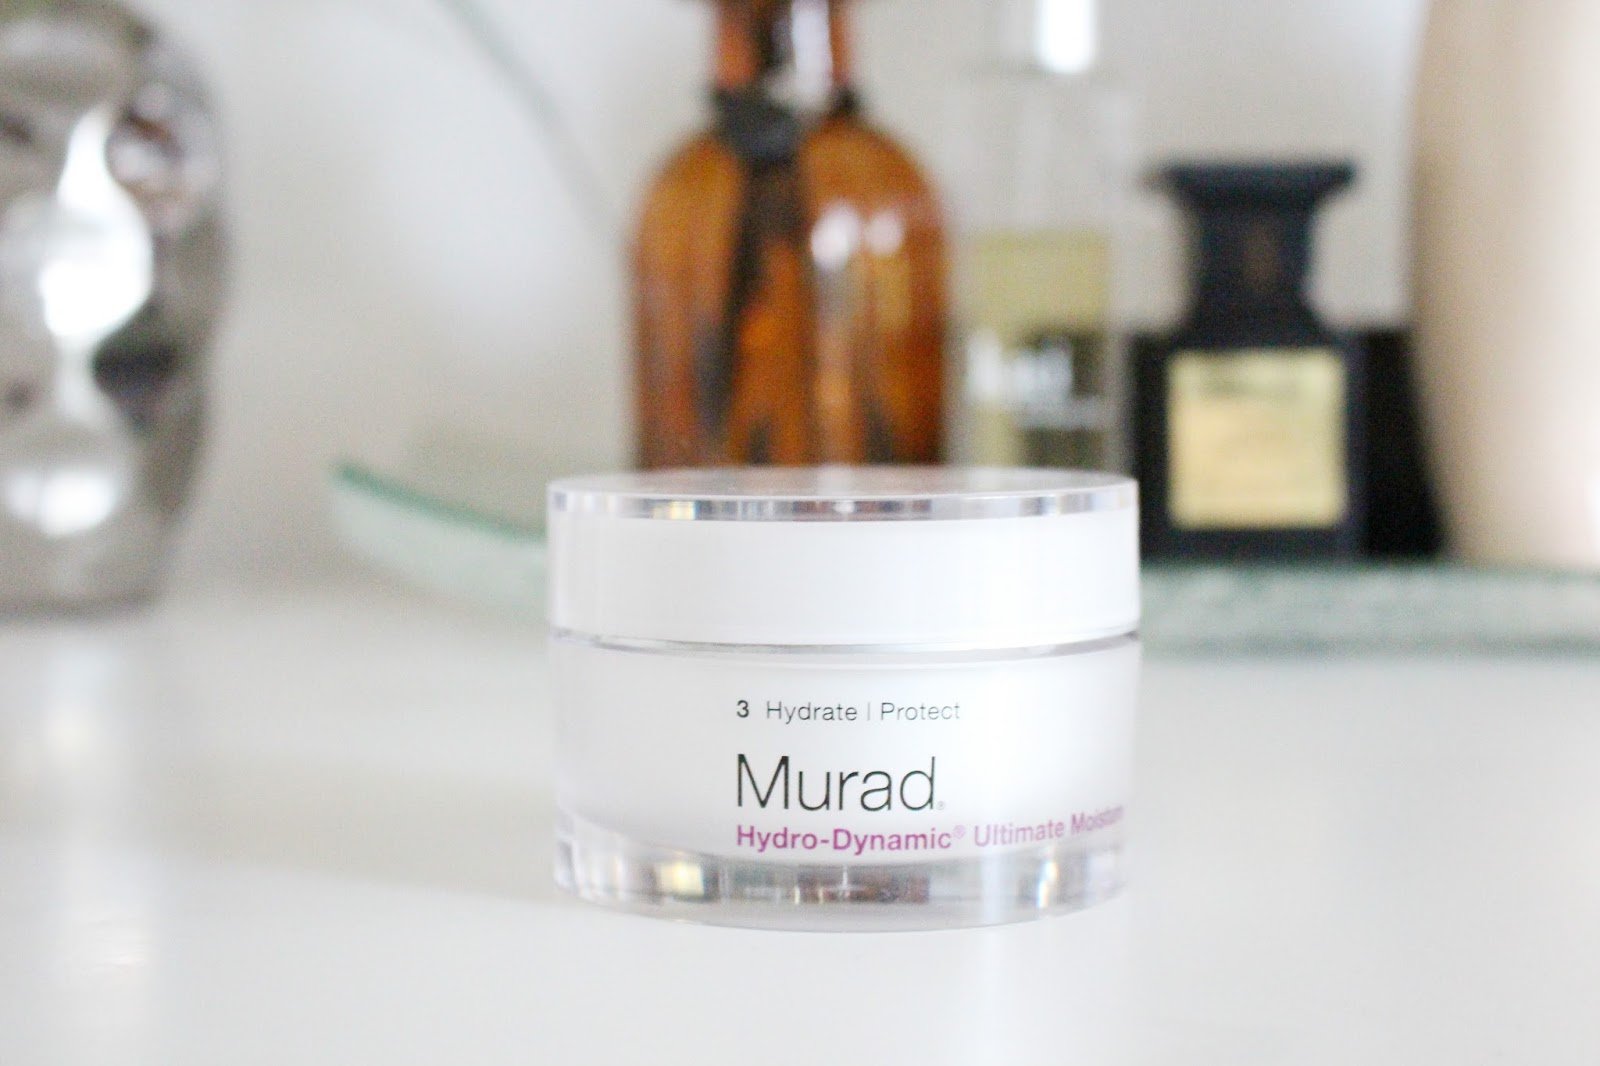 hyaluronic acid in skincare, sodium hyaluronate in skincare, murad hydrodynamic ultimate moisture